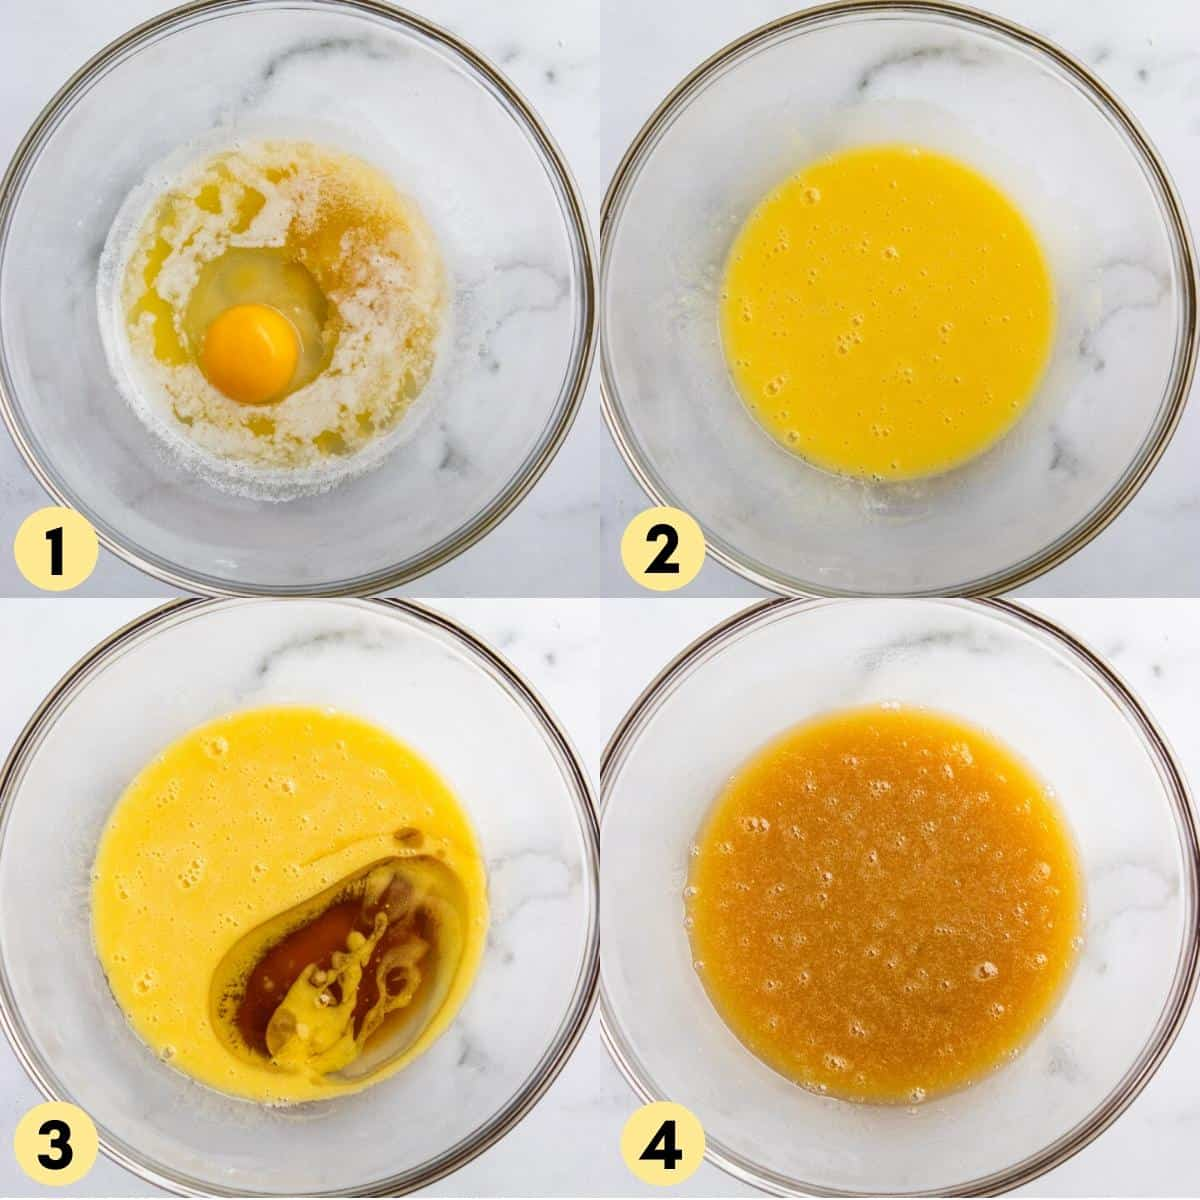 Step by step photos for recipe with egg and butter in bowl, maple, etc.